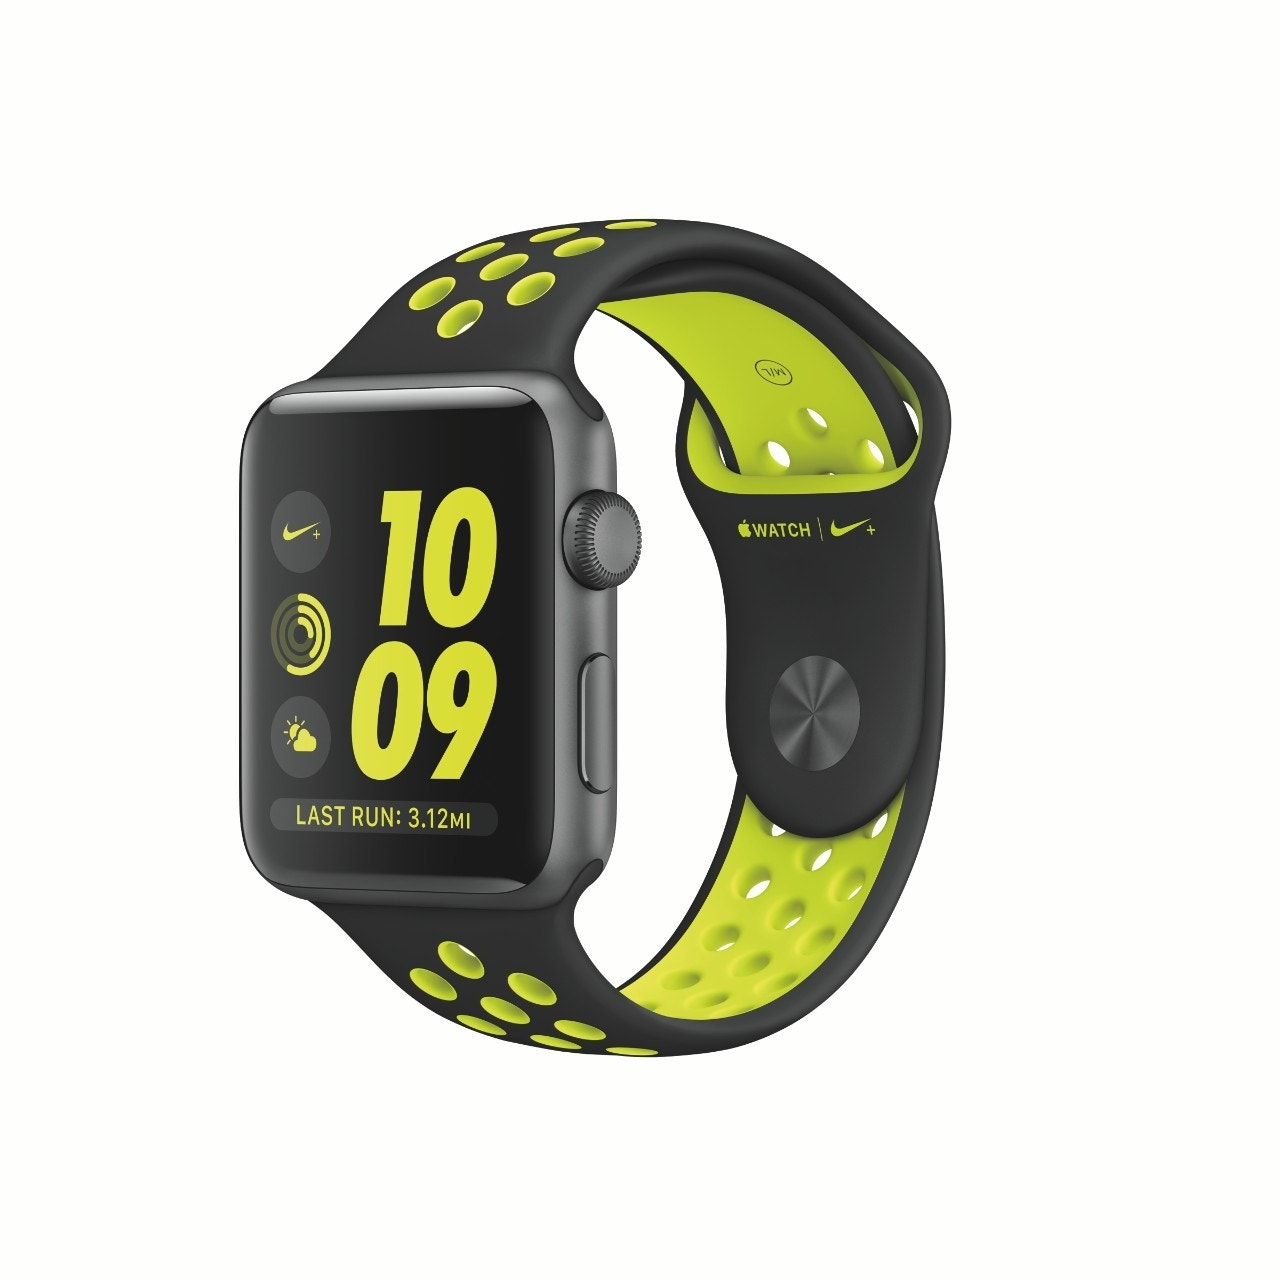 Apple Watch Nike+ coming soon, ups fitness ante